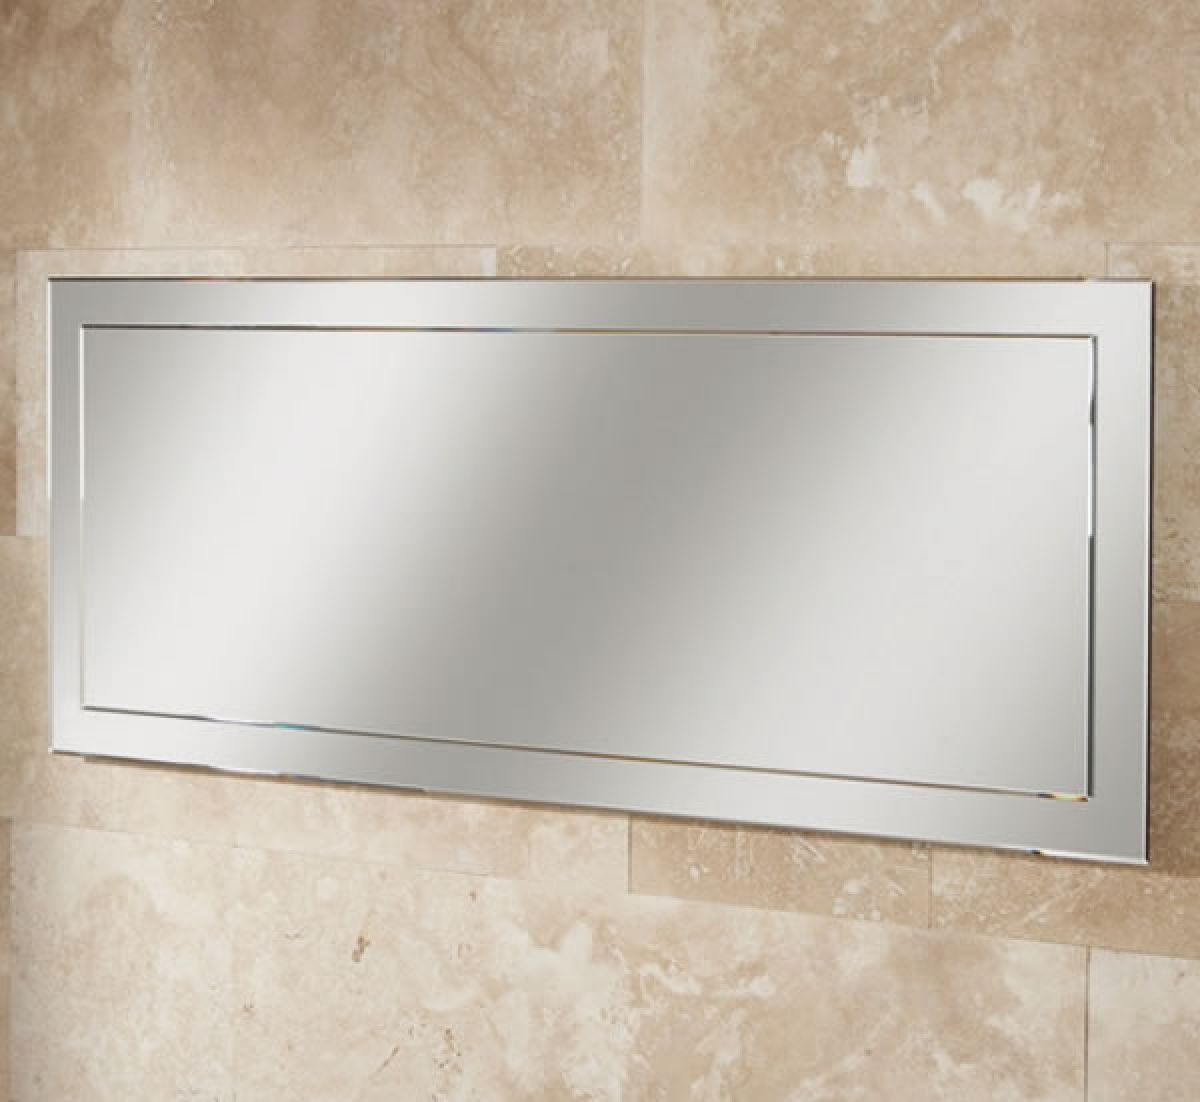 Bathroom Mirrors Uk - Home Safe